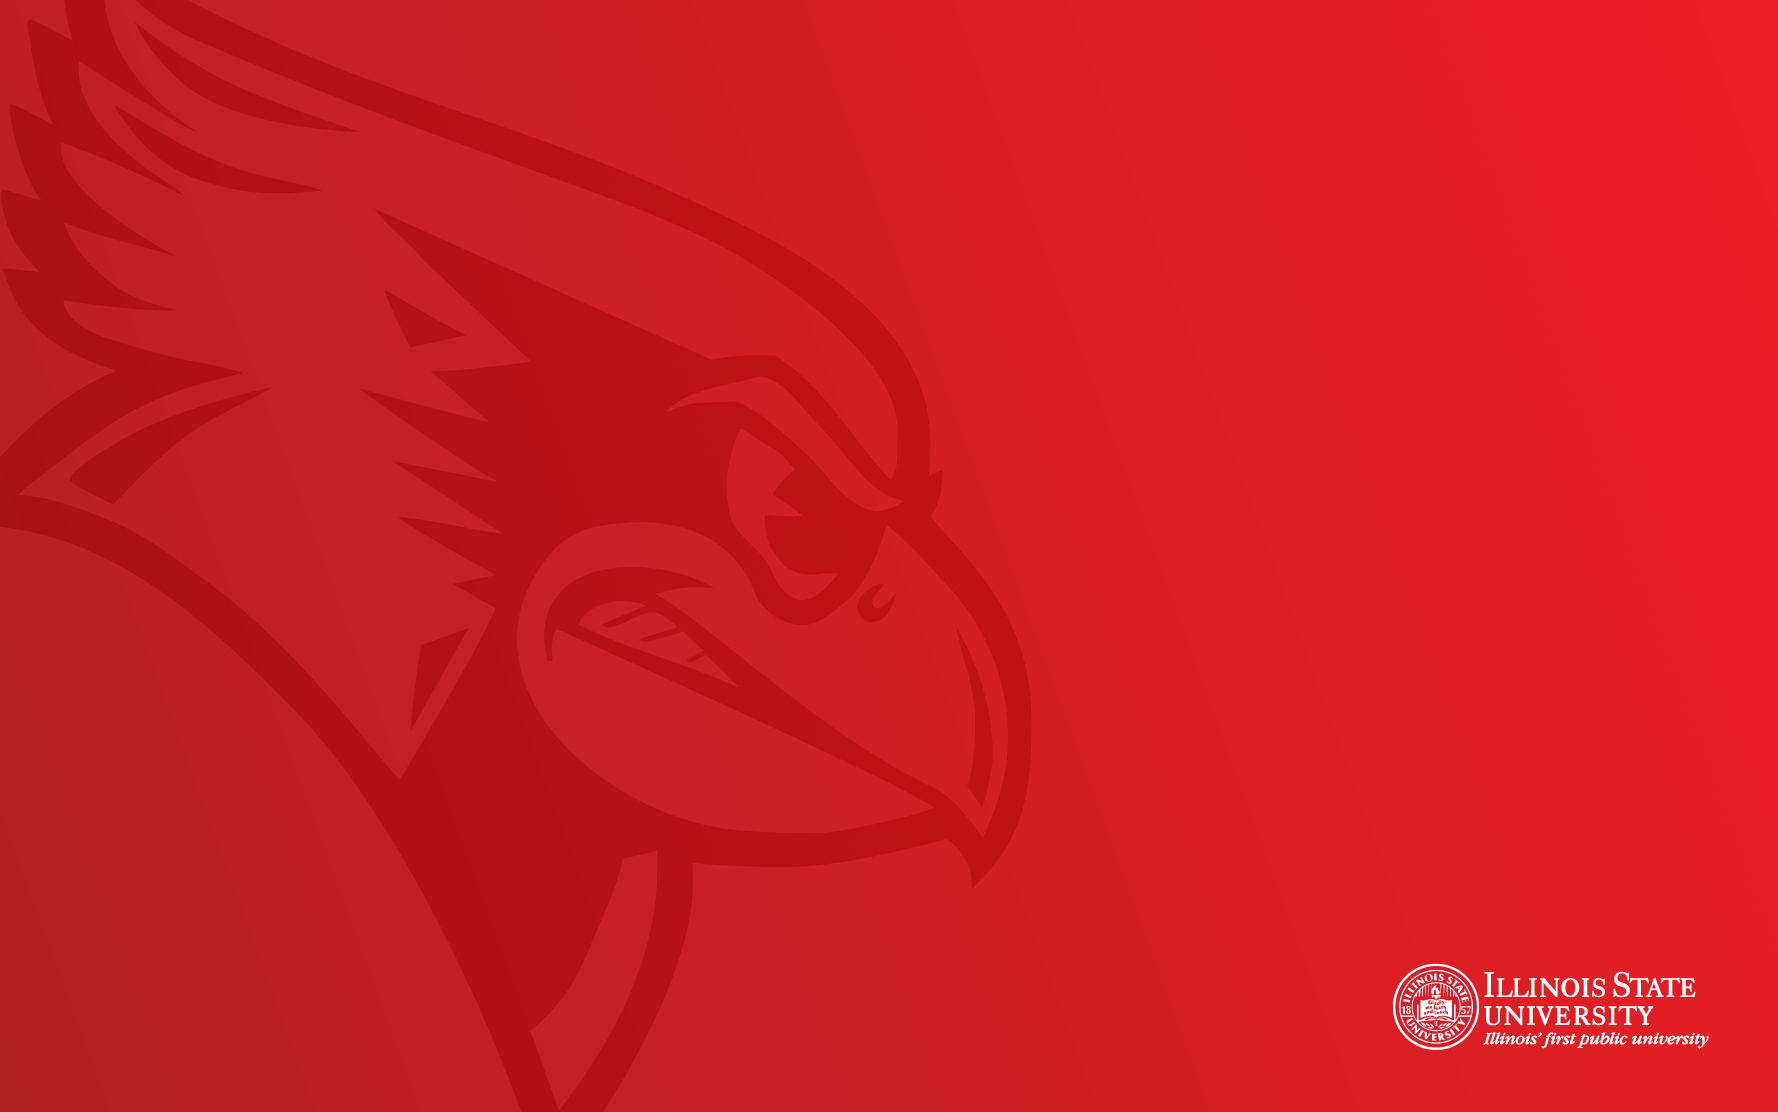 Illinois State Wallpapers Alumni   Illinois State 1778x1112